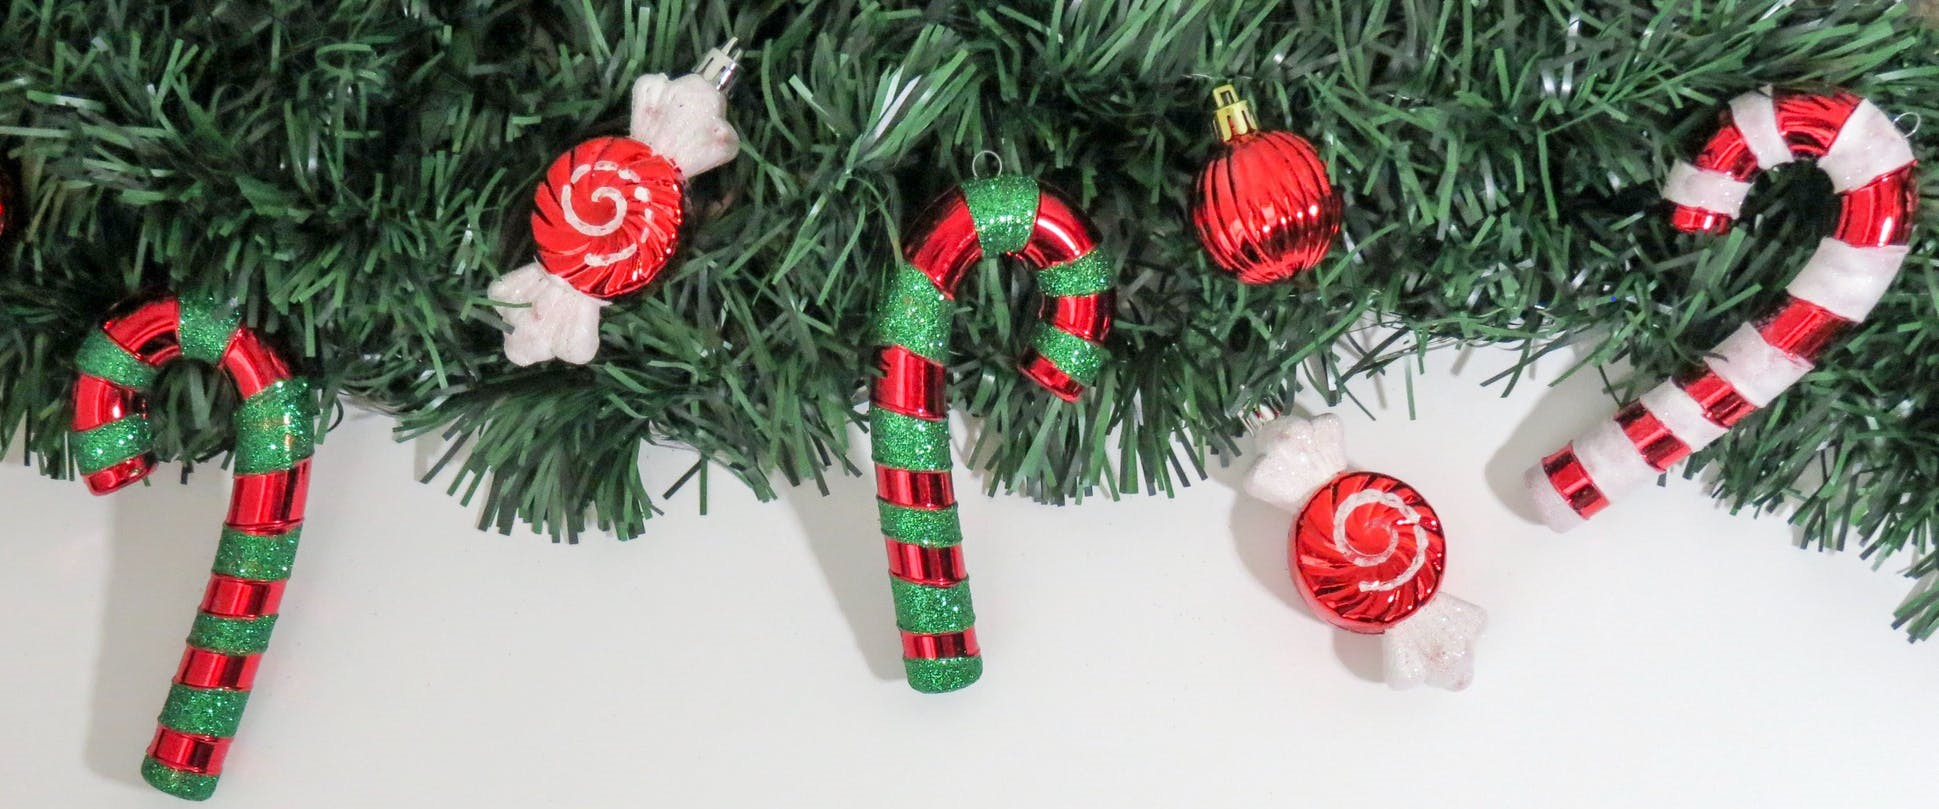 This is an image that shows a holiday garland with candy canes and ornaments.